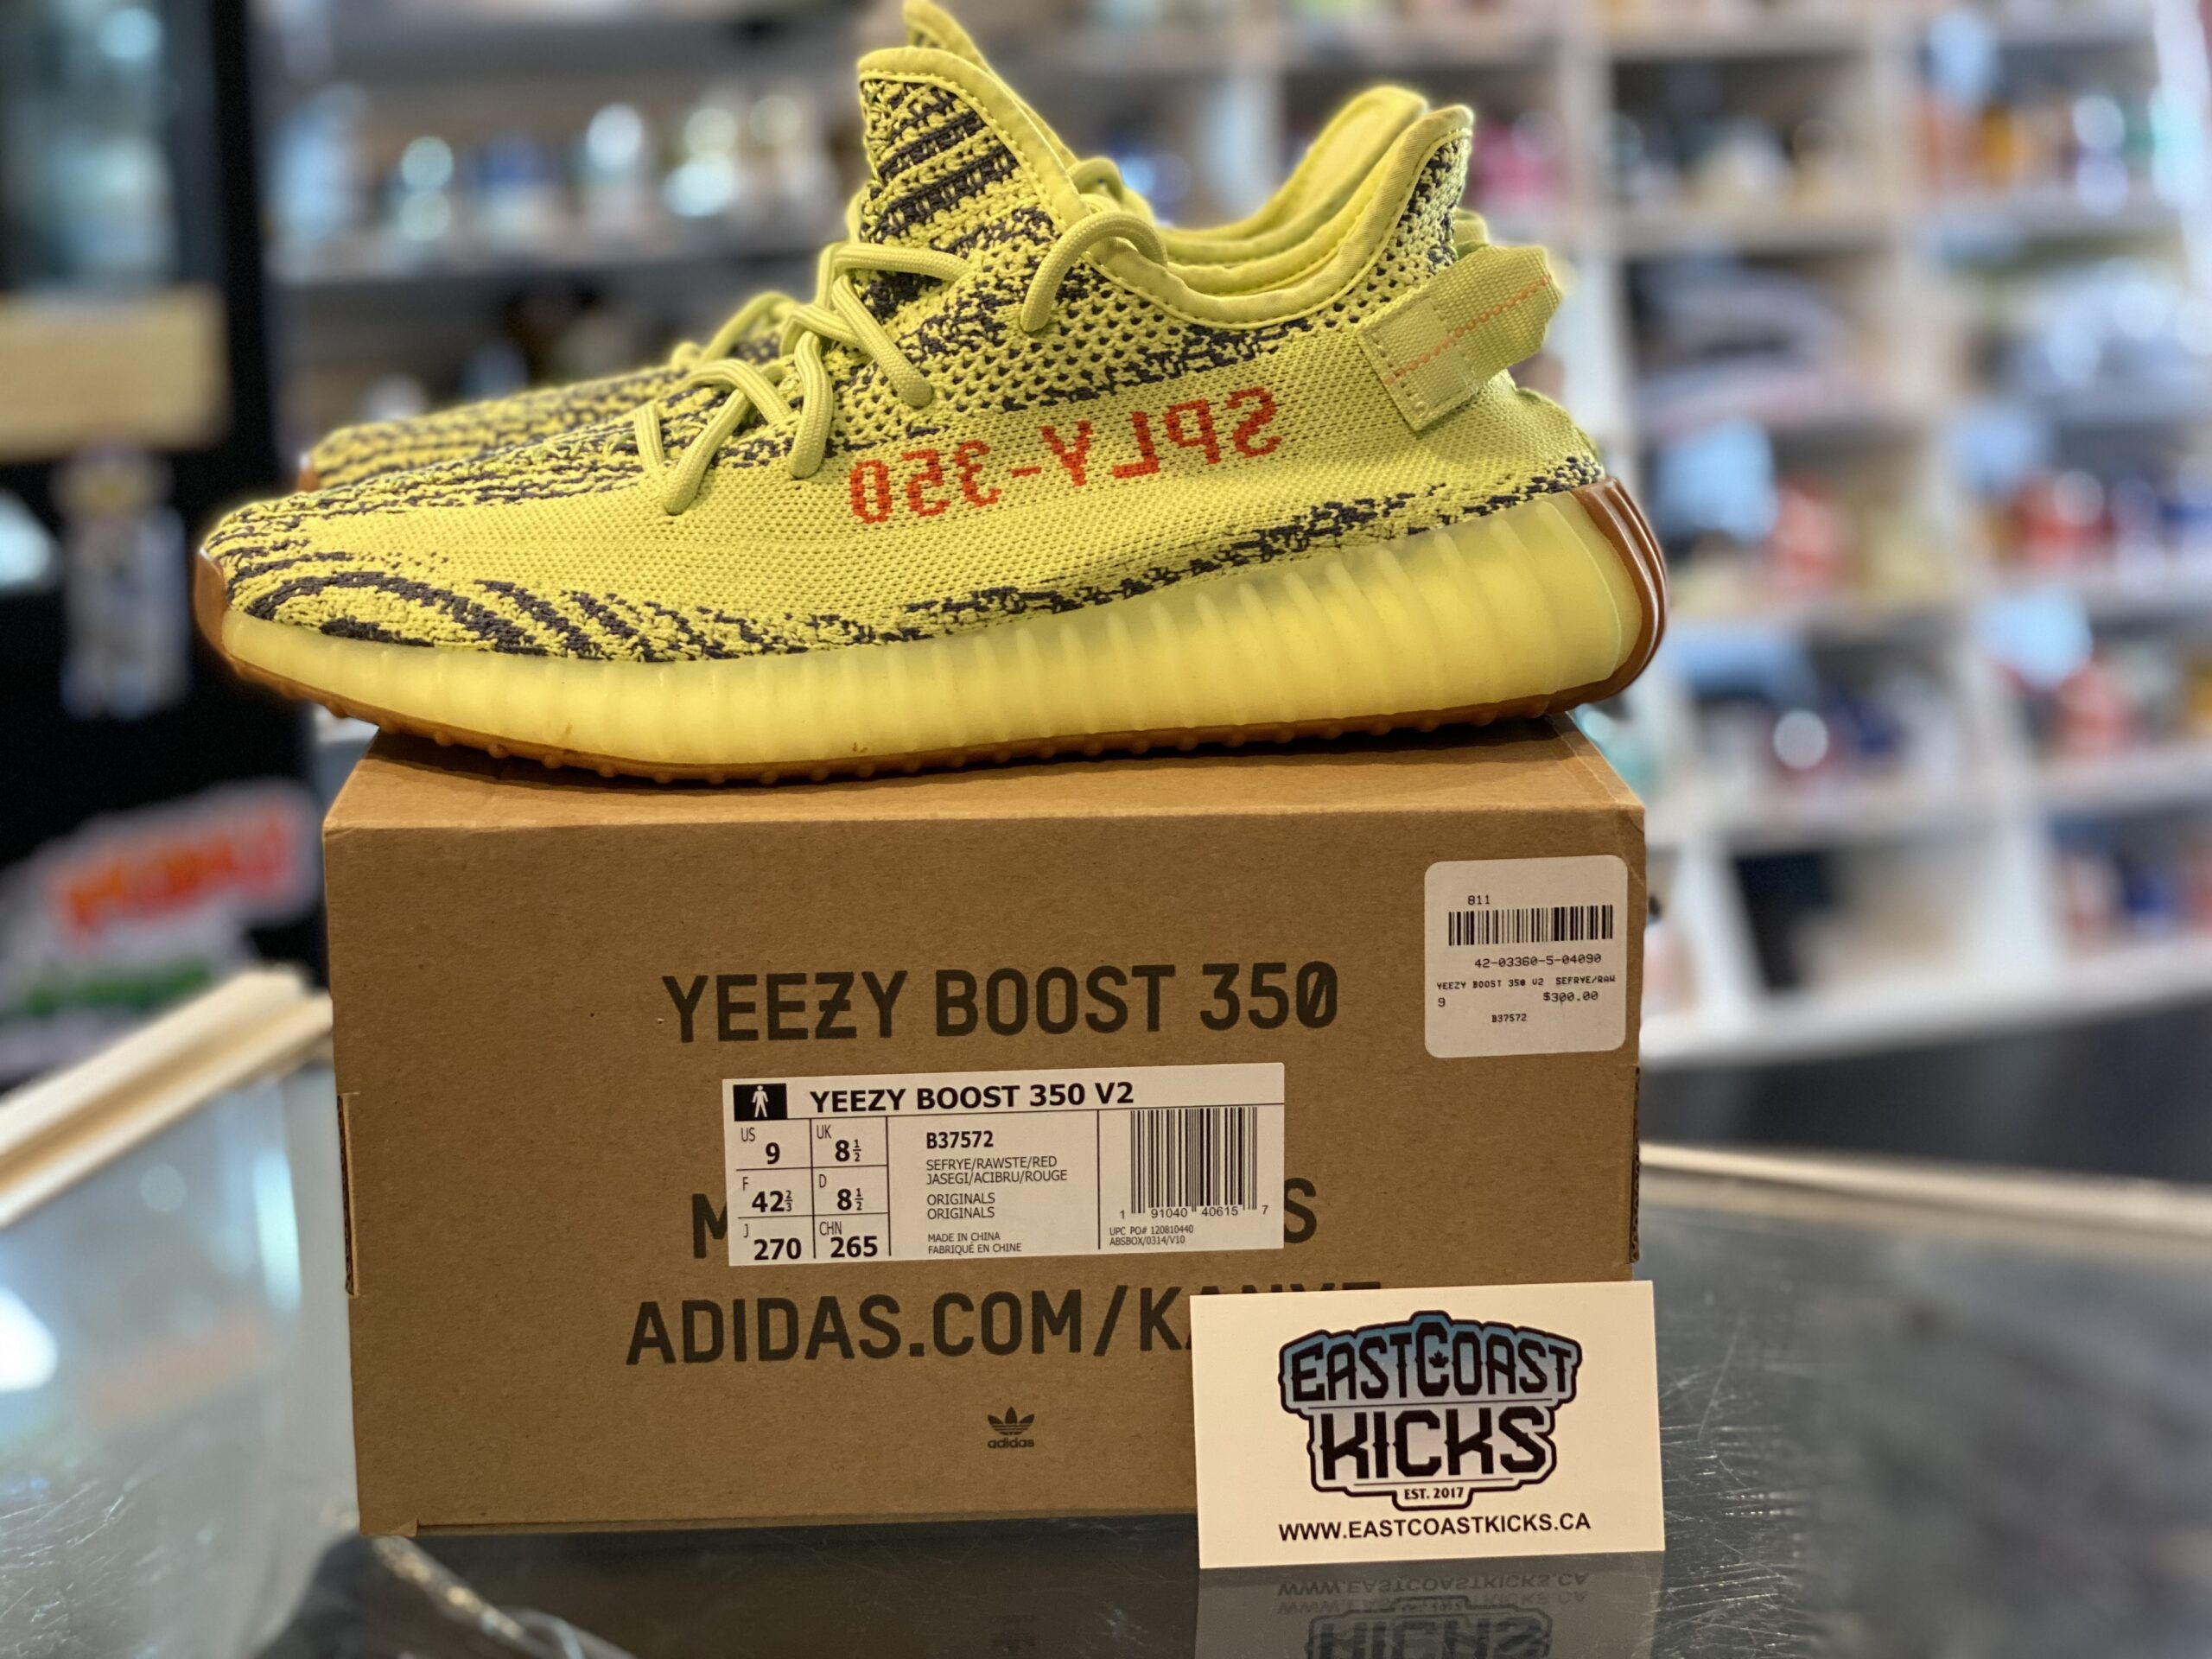 Preowned Adidas Yeezy 350 Frozen Yellow Size 9